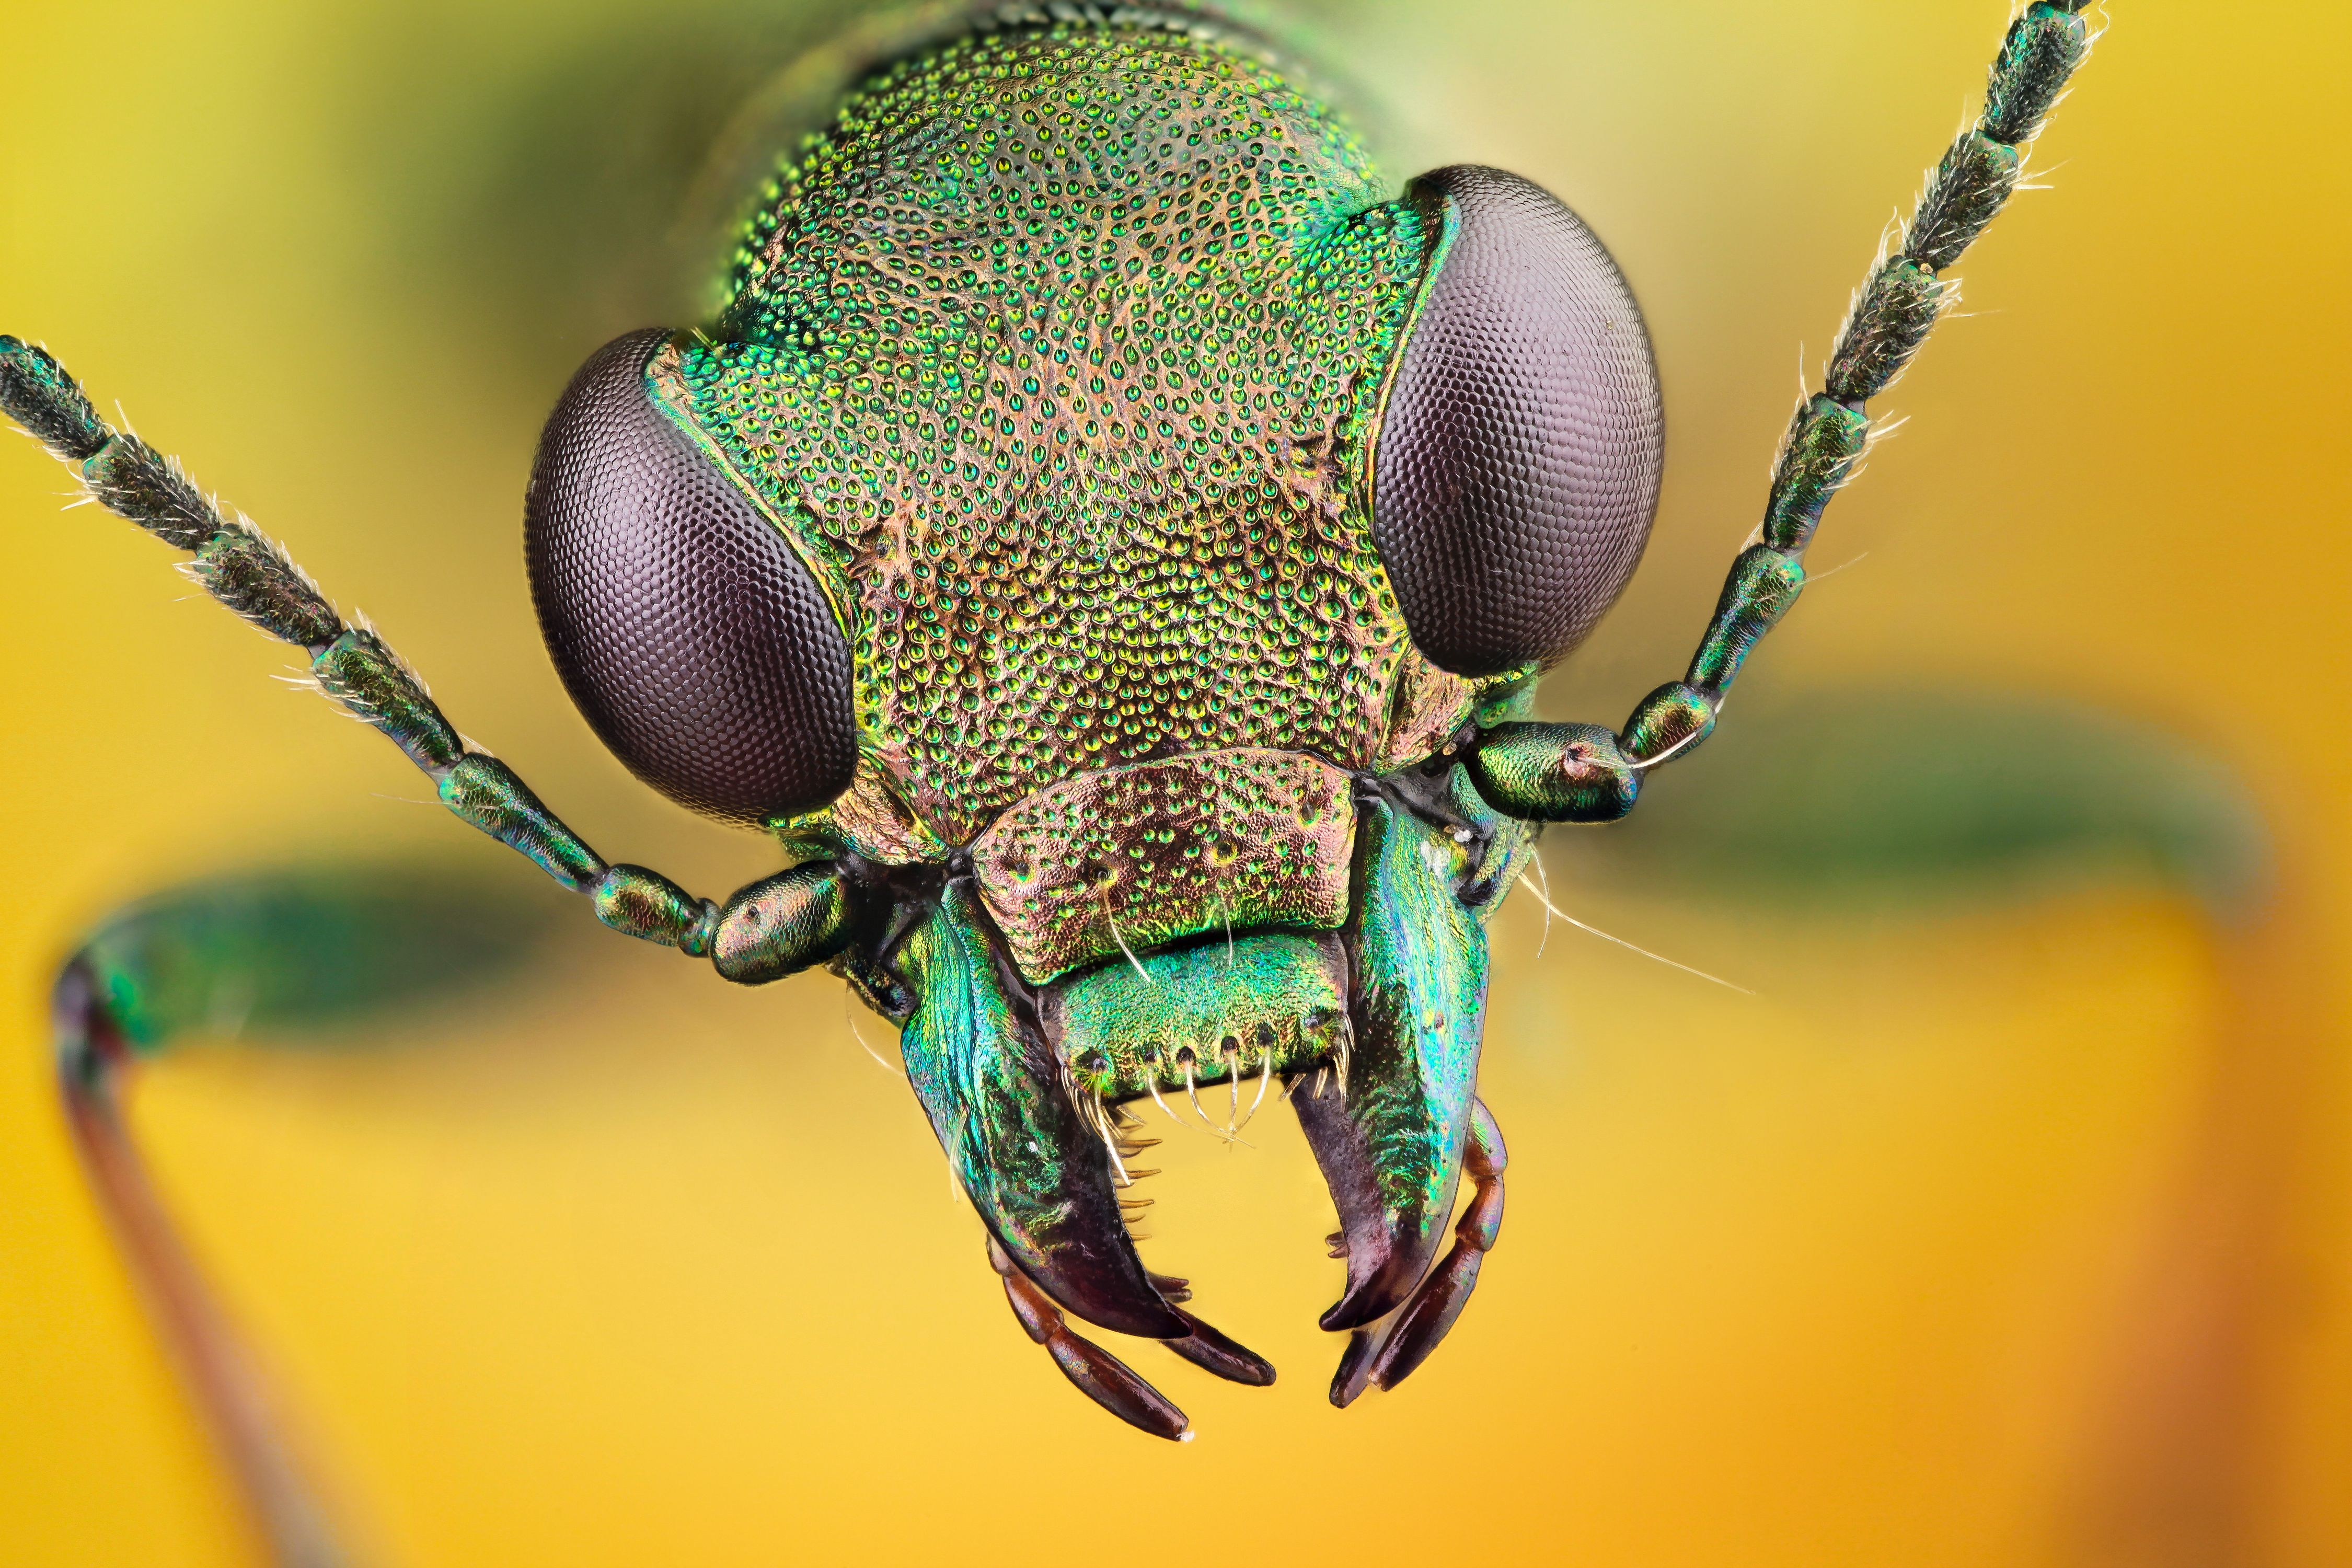 Insect Wallpapers   Top Insect Backgrounds   WallpaperAccess 4500x3000